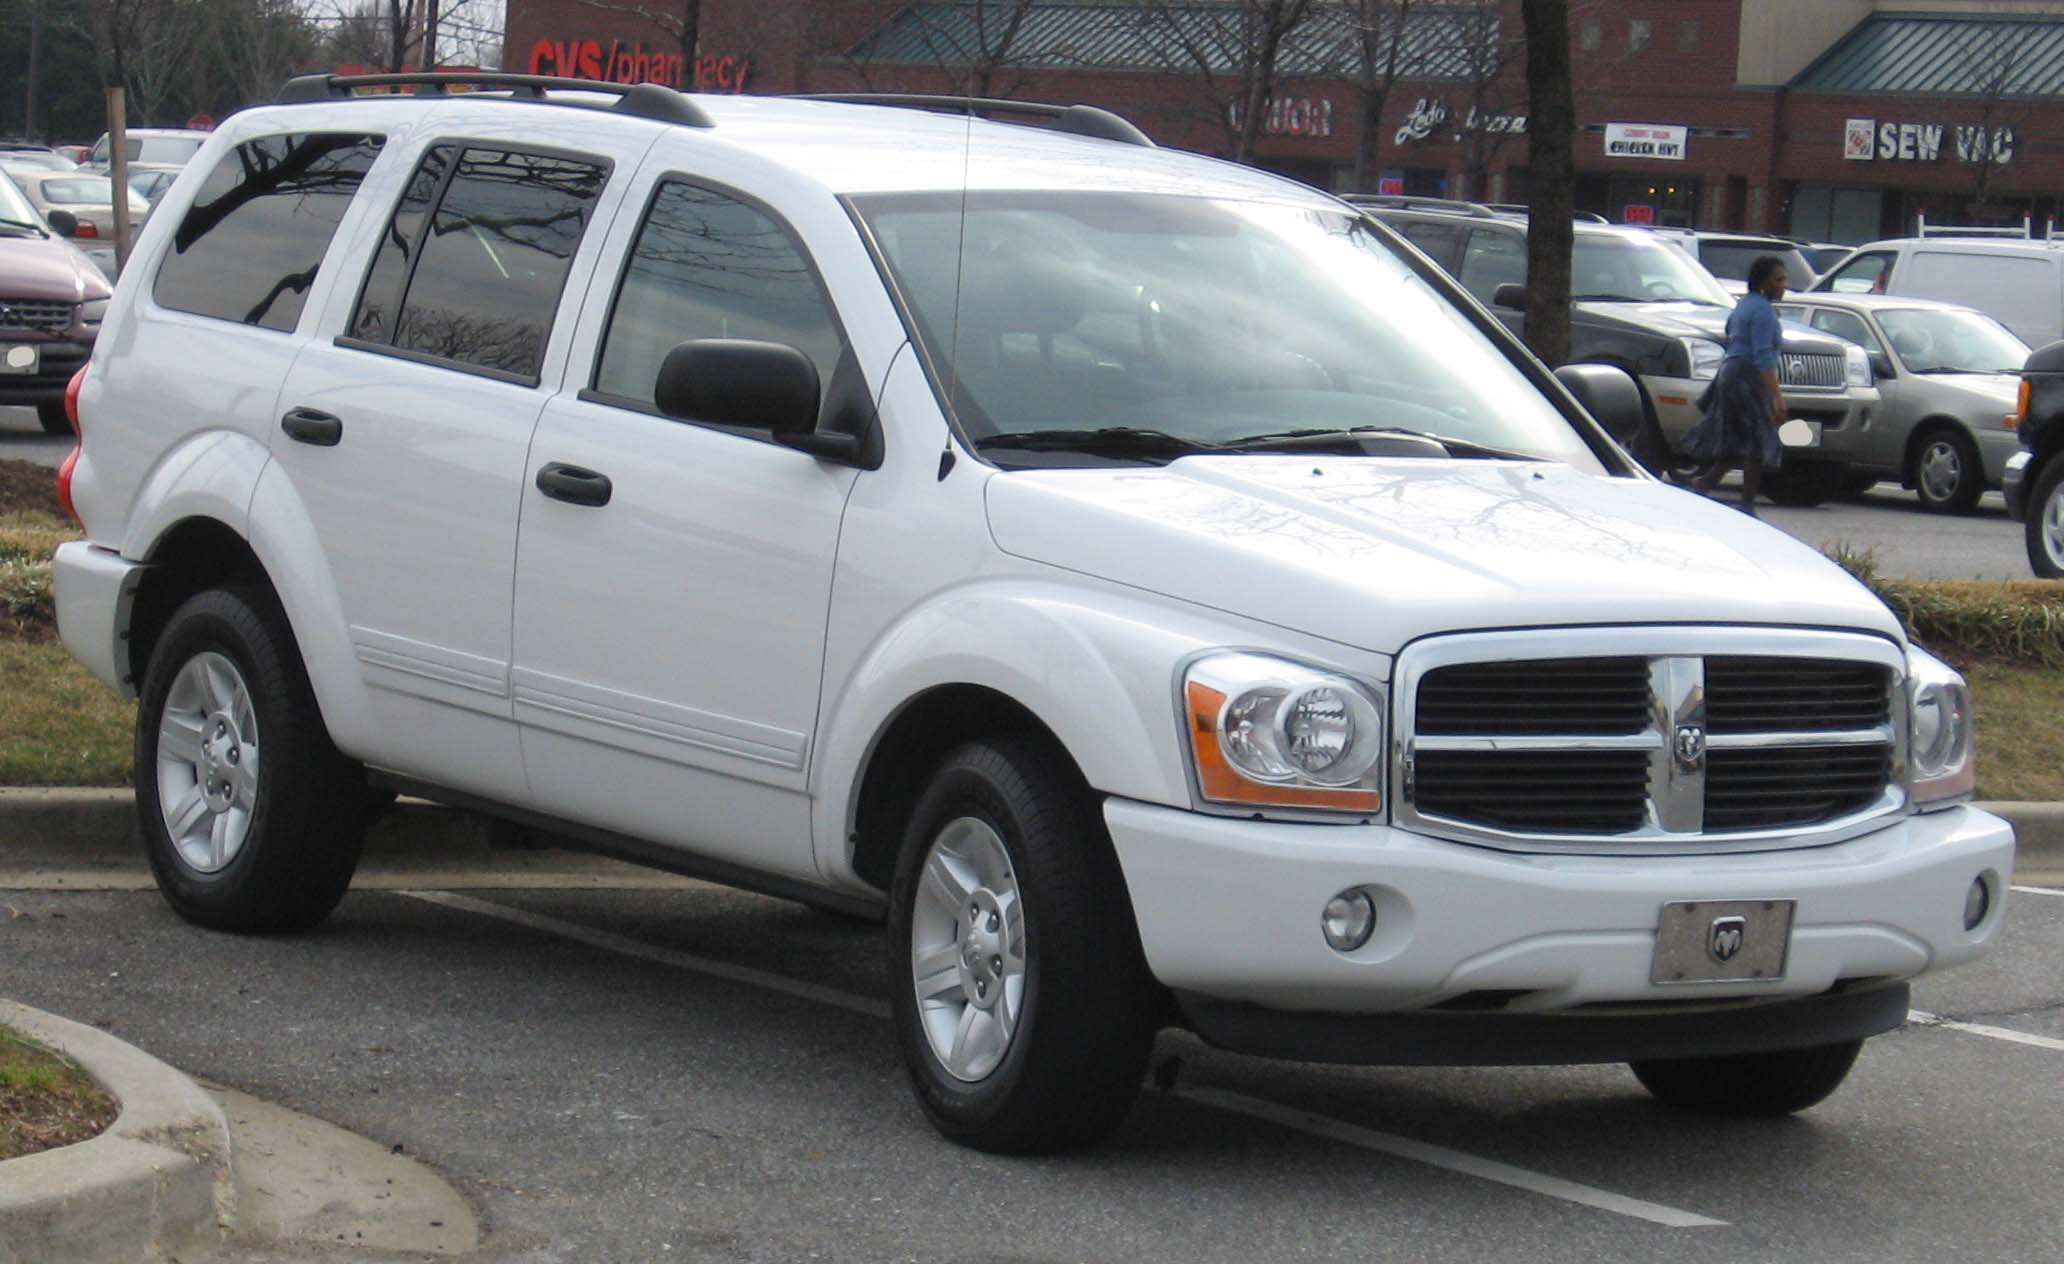 File:2004-2006 Dodge Durango.jpg